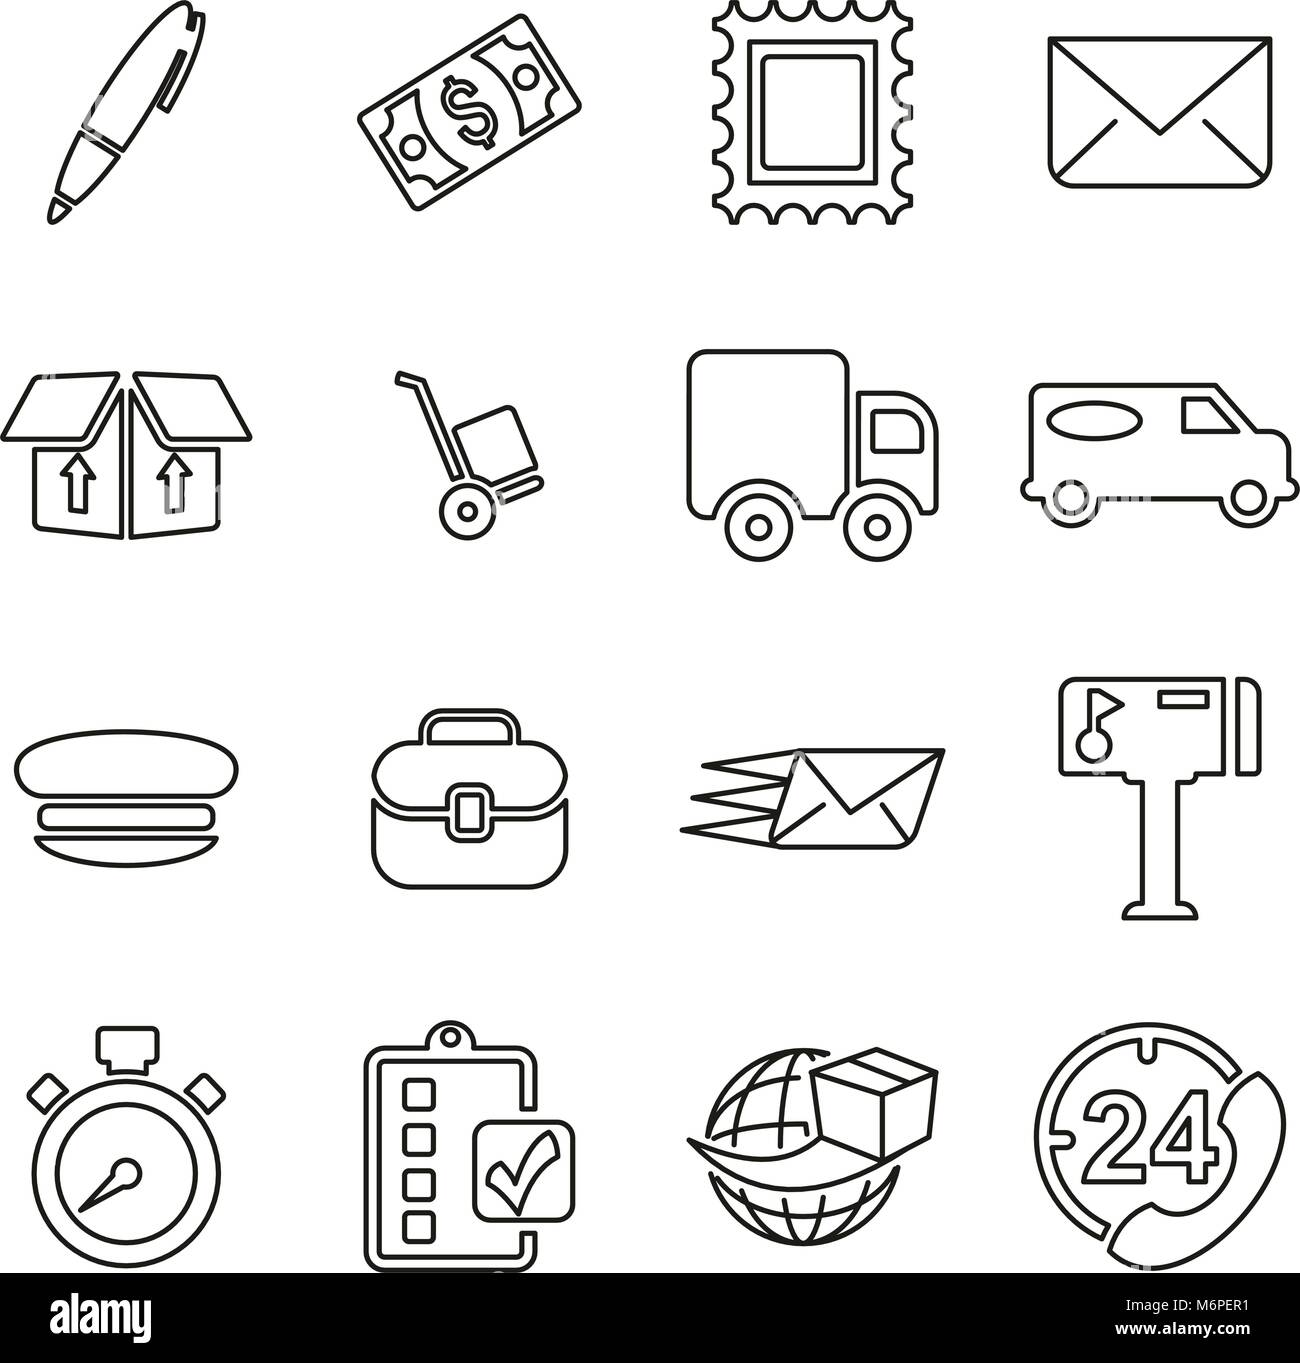 Post Office or Mail Man or Delivery Service Icons Thin Line Vector Illustration Set - Stock Image